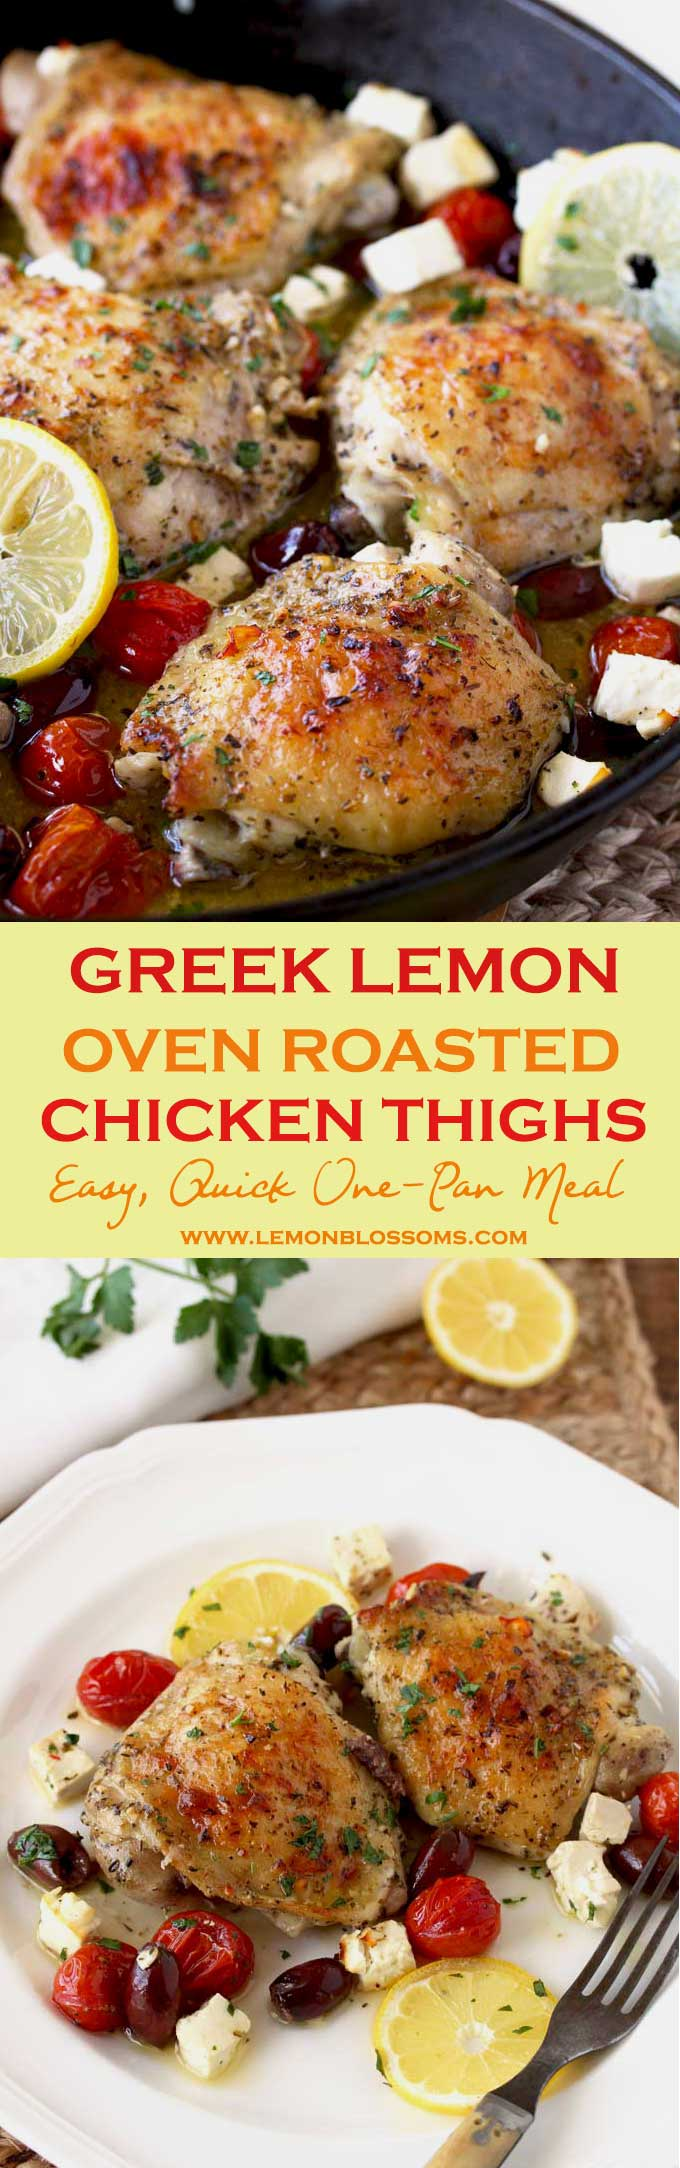 Greek Lemon Oven Roasted Chicken Thighs are quick and easy to make. Bone in chicken thighs are quickly marinated and baked with Kalamata olives, tomatoes and Feta cheese until juicy on the inside and crispy on the outside. I am sure this simple chicken thigh recipe will become a new favorite! #Greekfood #GreekChicken #Lemonchicken #chickenthighs #easyrecipes #onepanmeal #recipe #chickenrecipe #ovenbaked